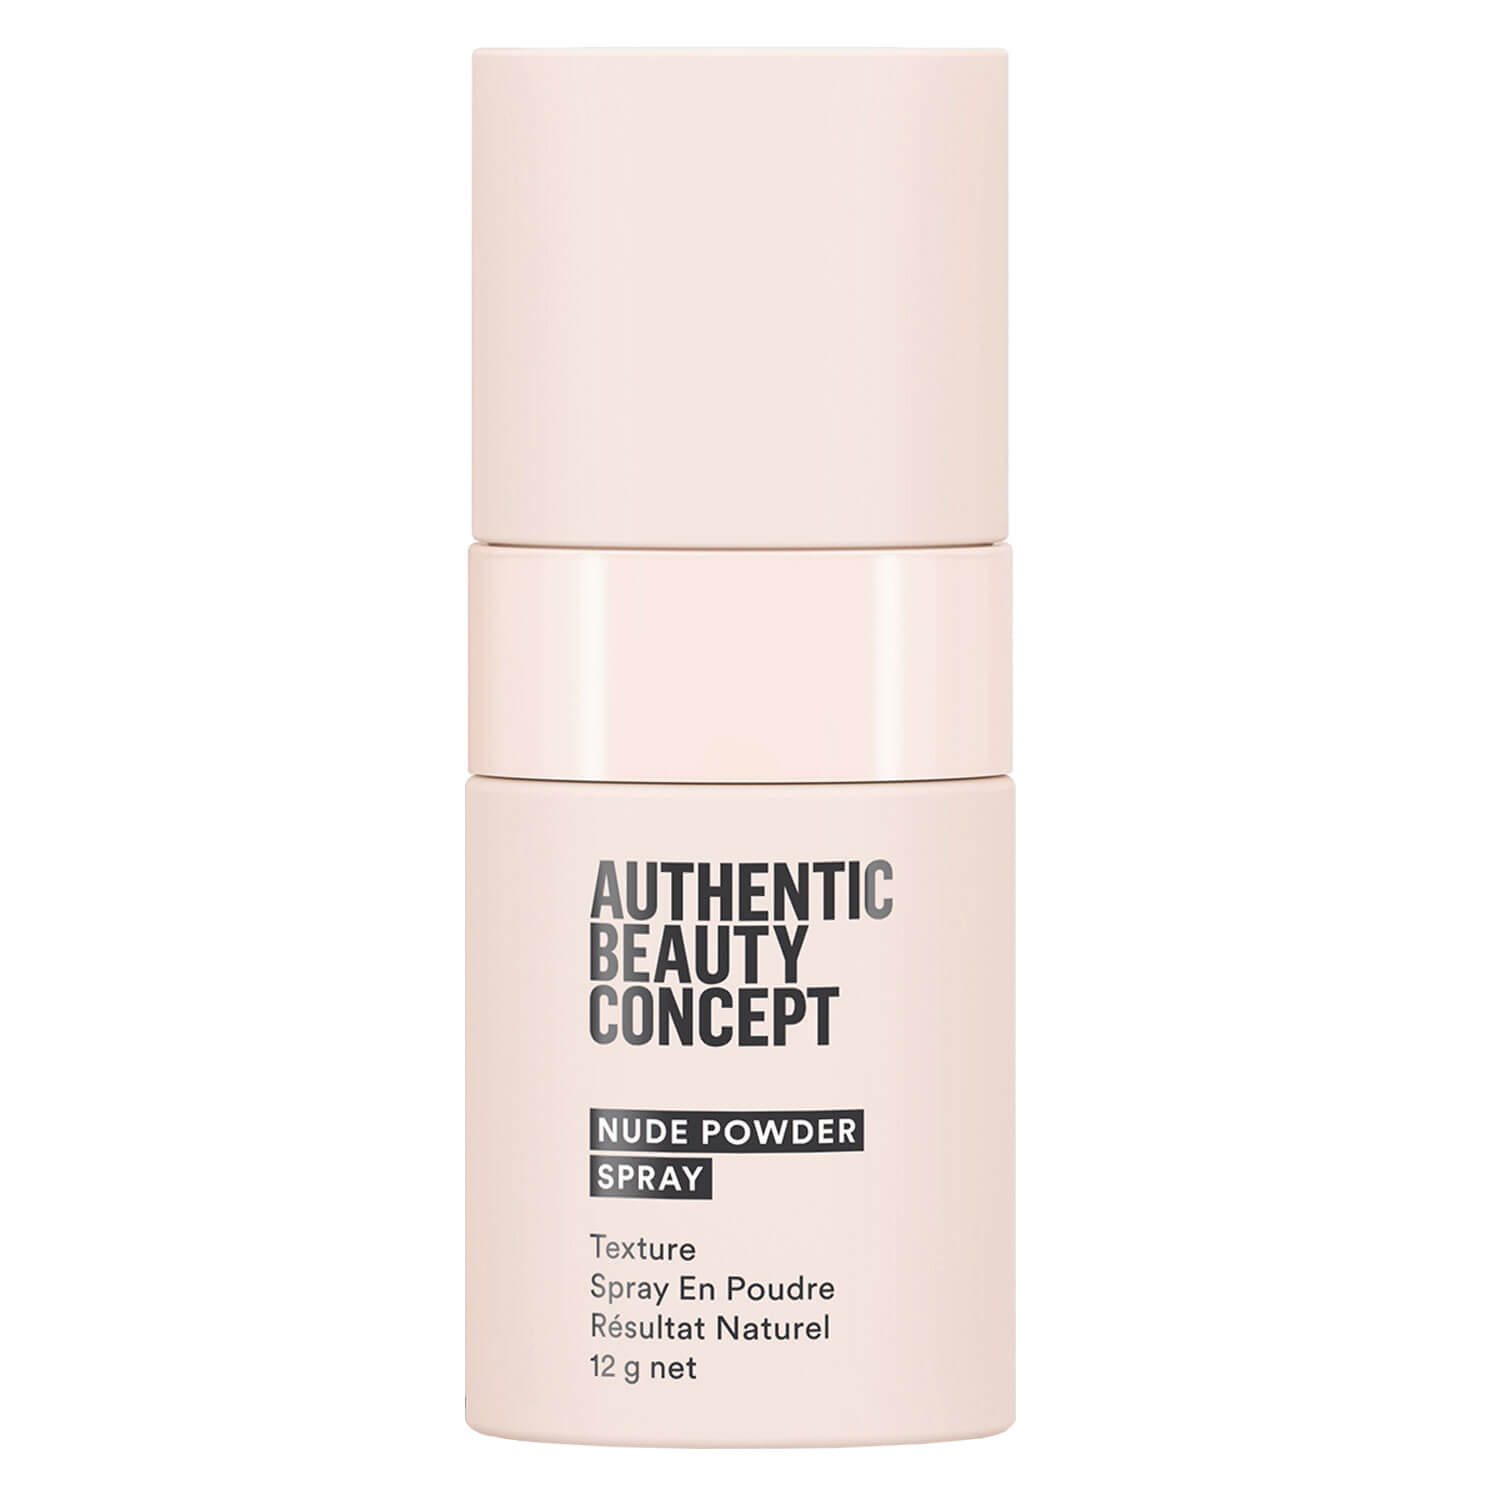 Authentic Beauty Concept - Nude Powder Spray - 12g